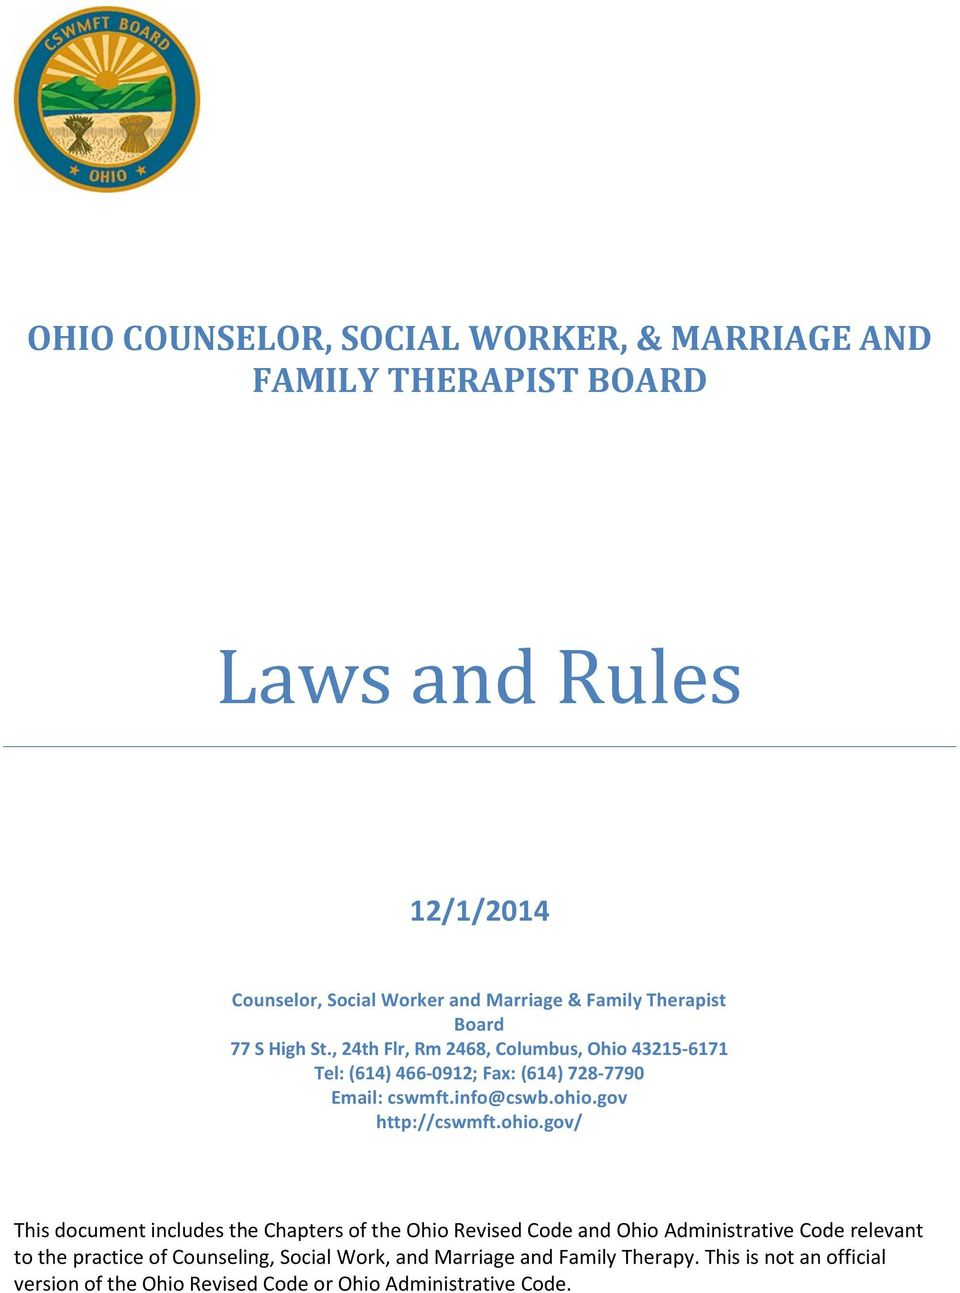 ohio counselor social worker and marriage and family